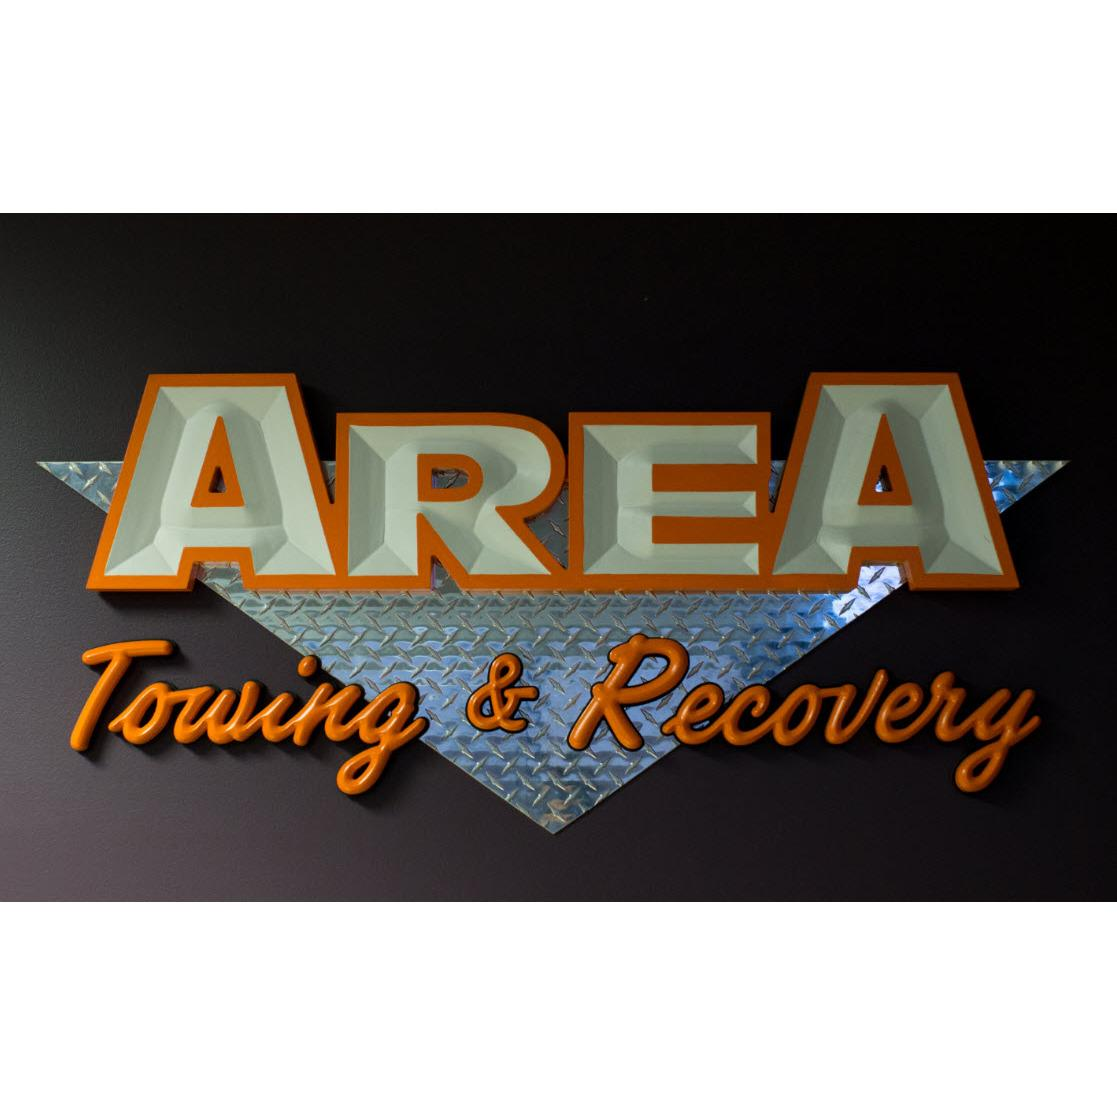 Area Towing and Recovery Inc - Taylor, MI 48180 - (734)283-6635 | ShowMeLocal.com